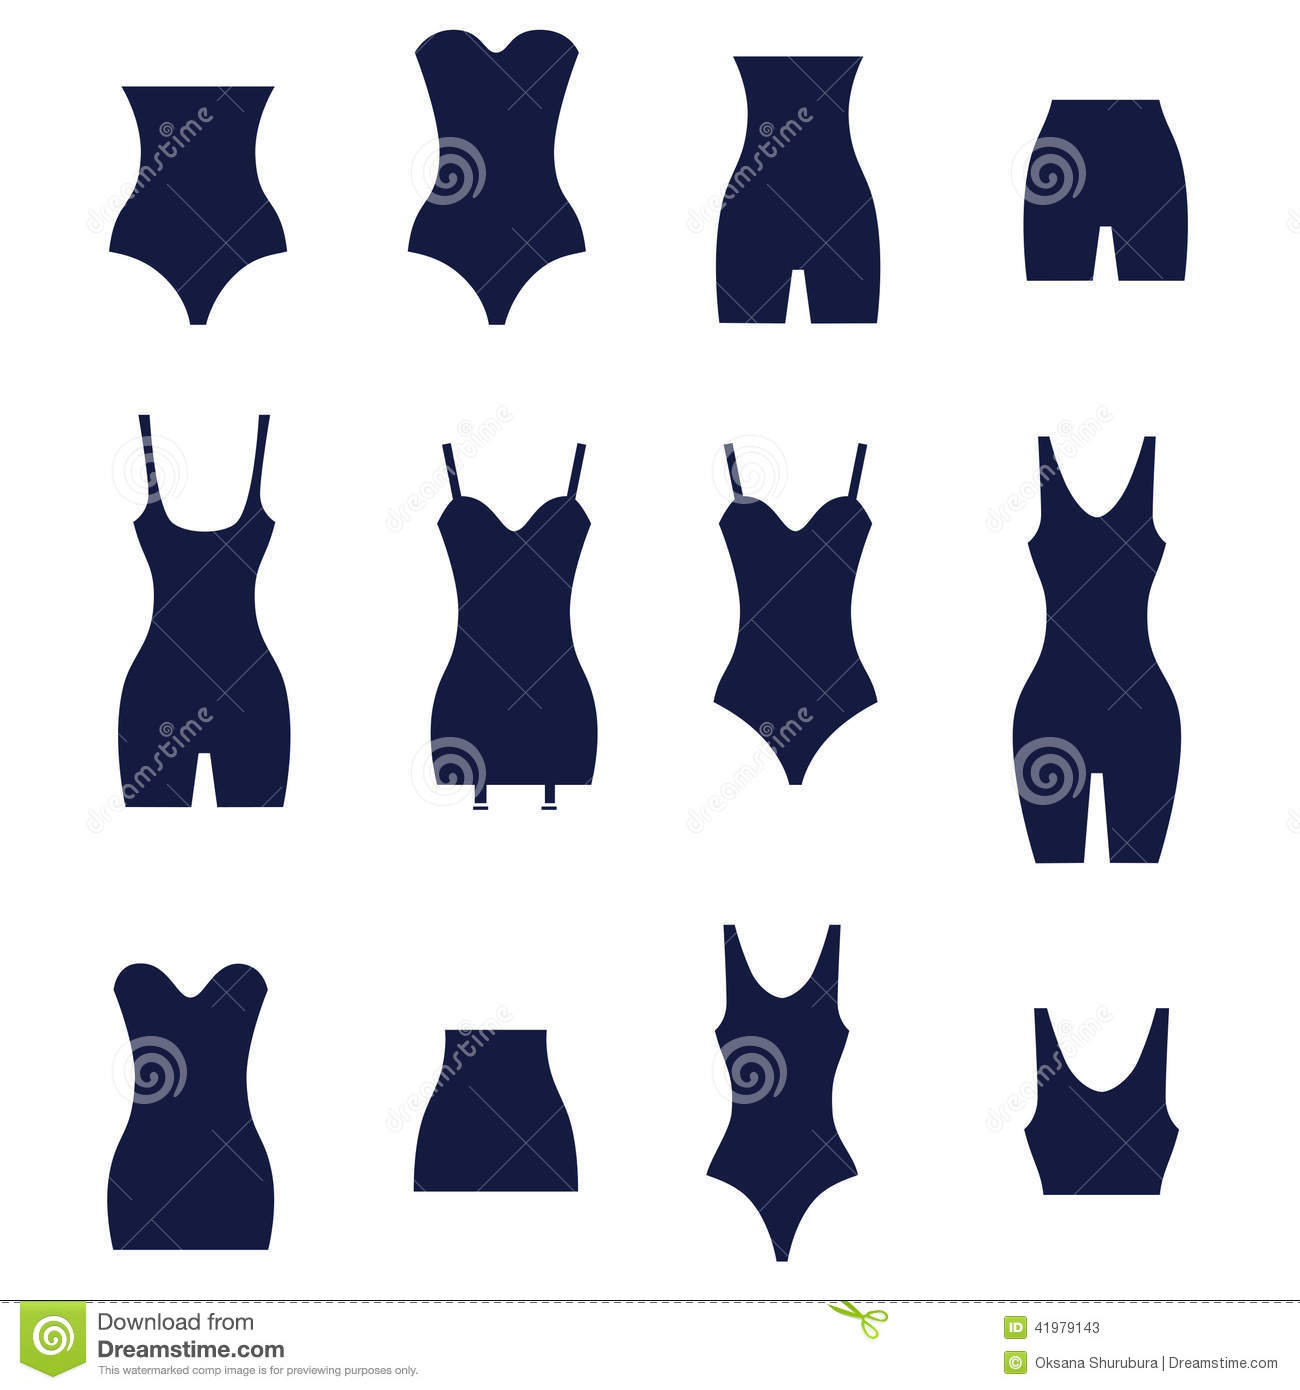 Body Shapes For Fashion Design